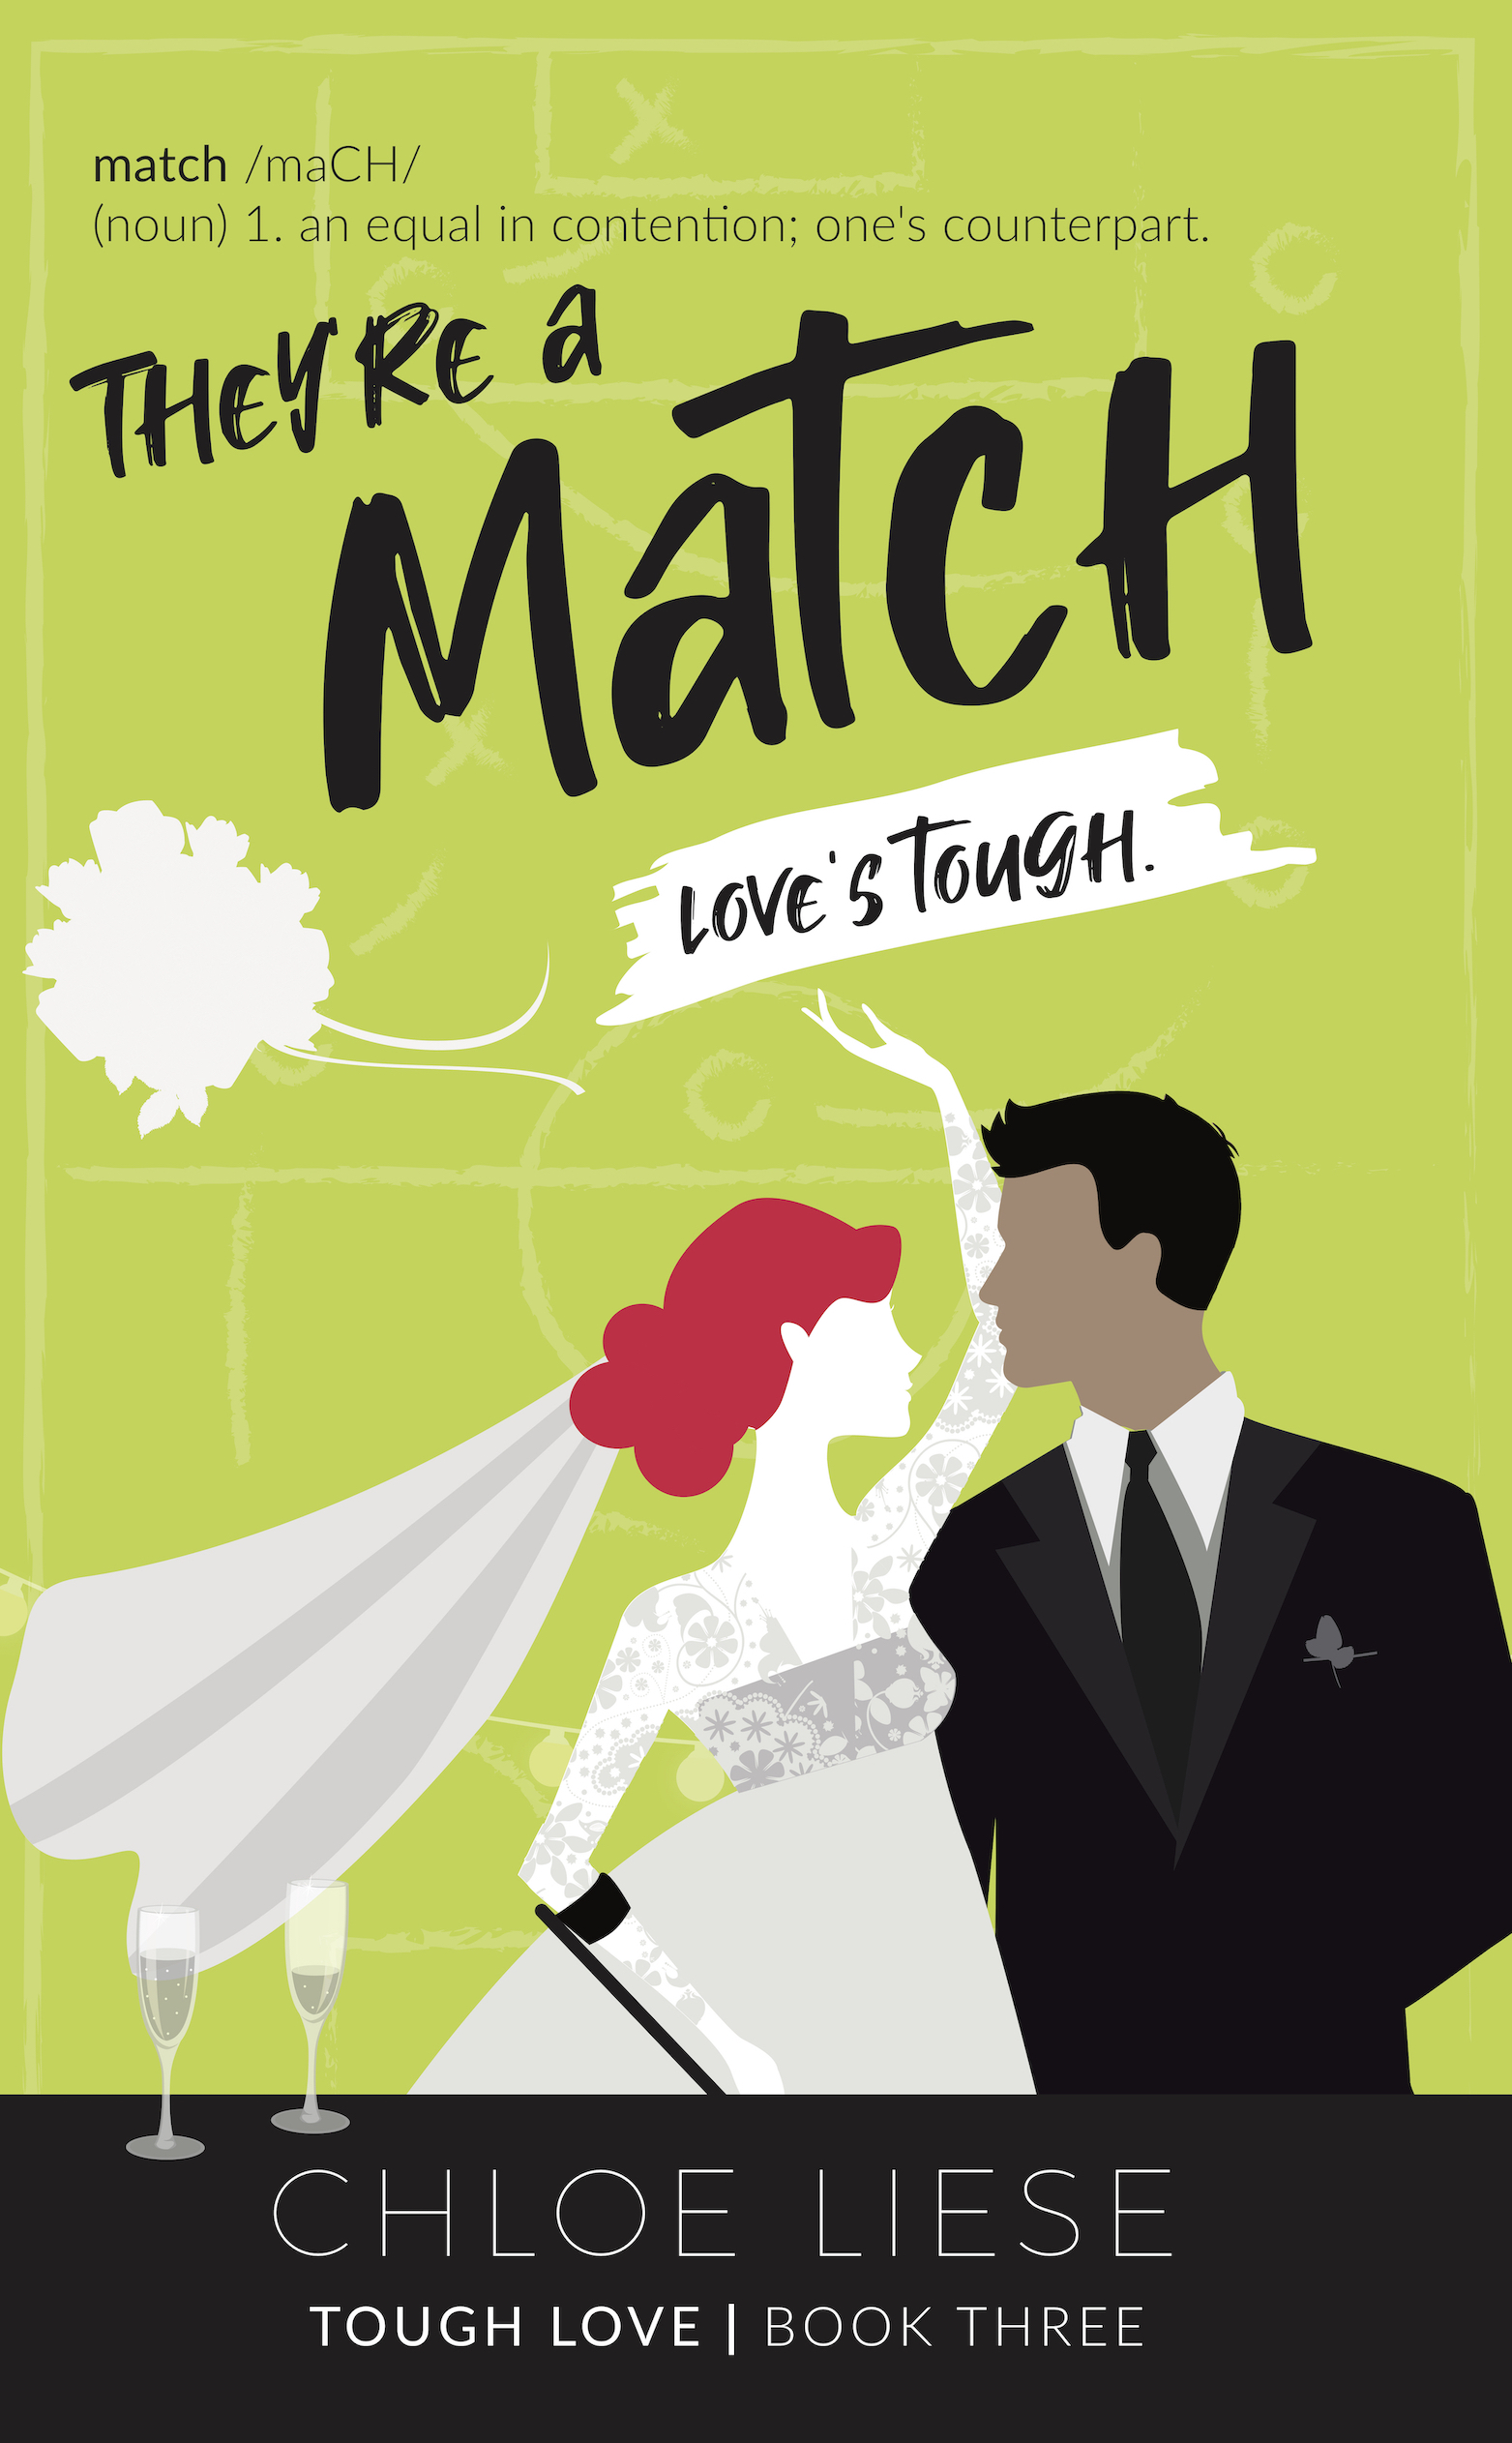 They're a Match book cover by Chloe Liese